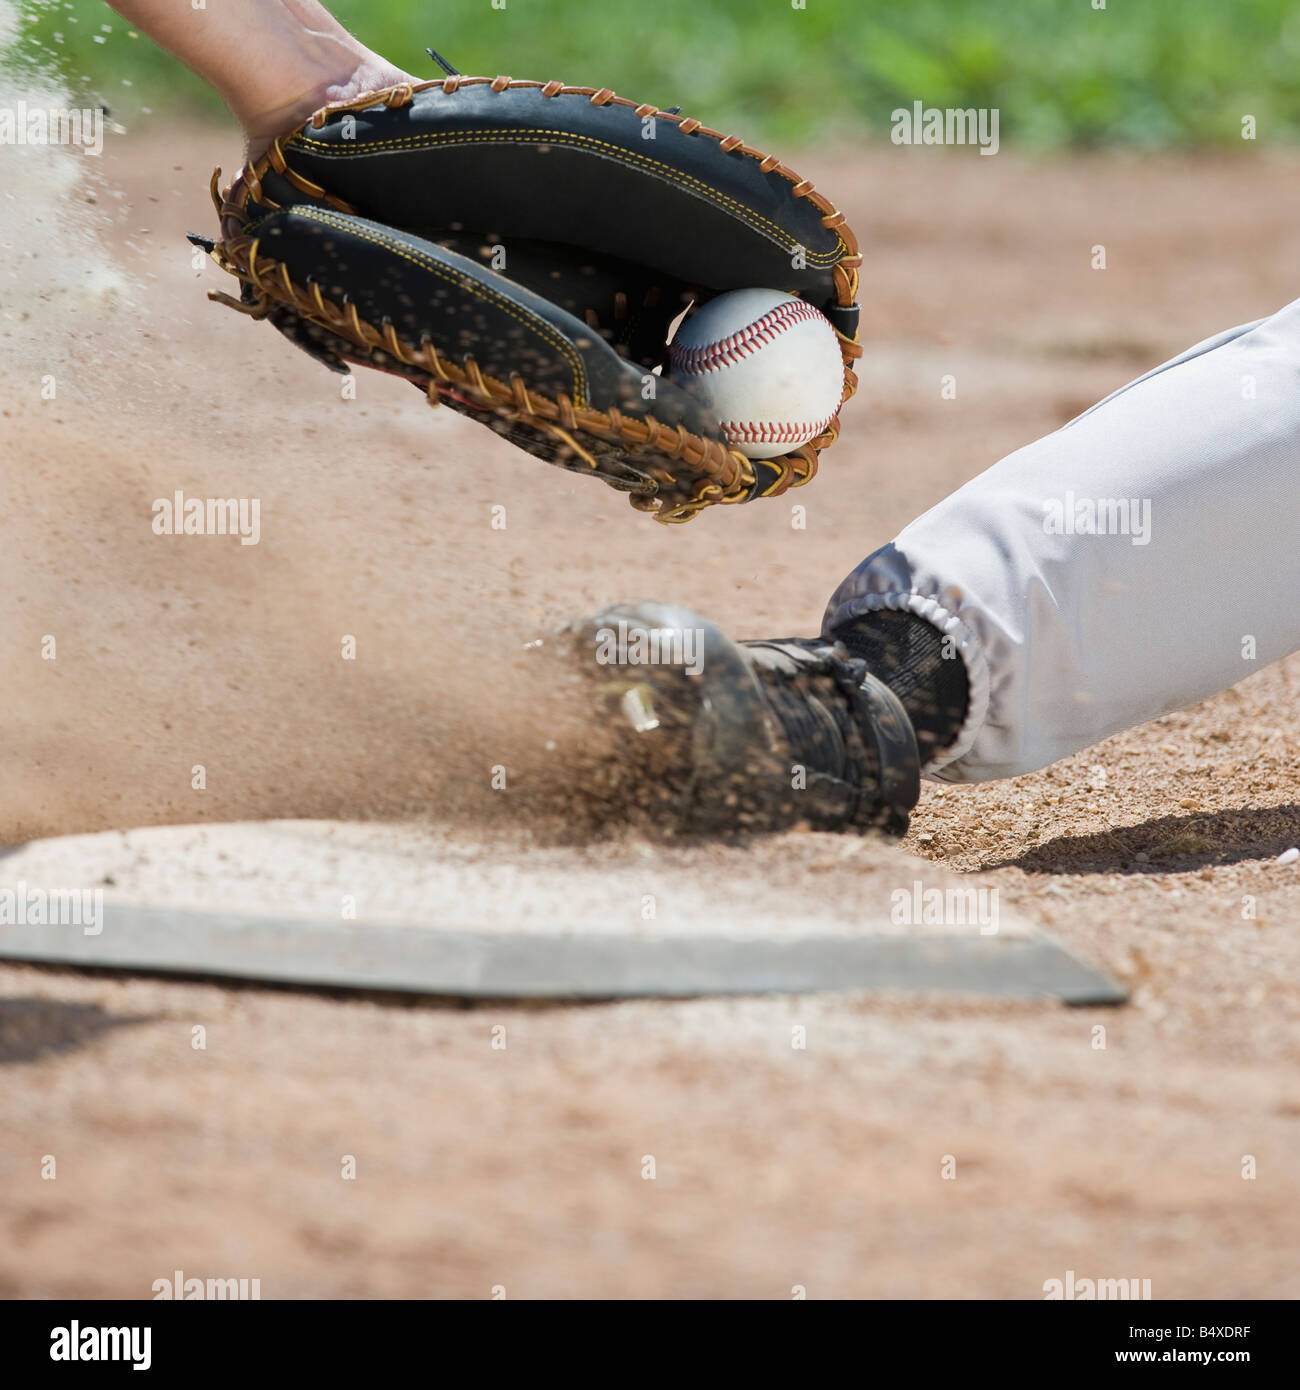 close up of baseball player sliding into home plate stock photo